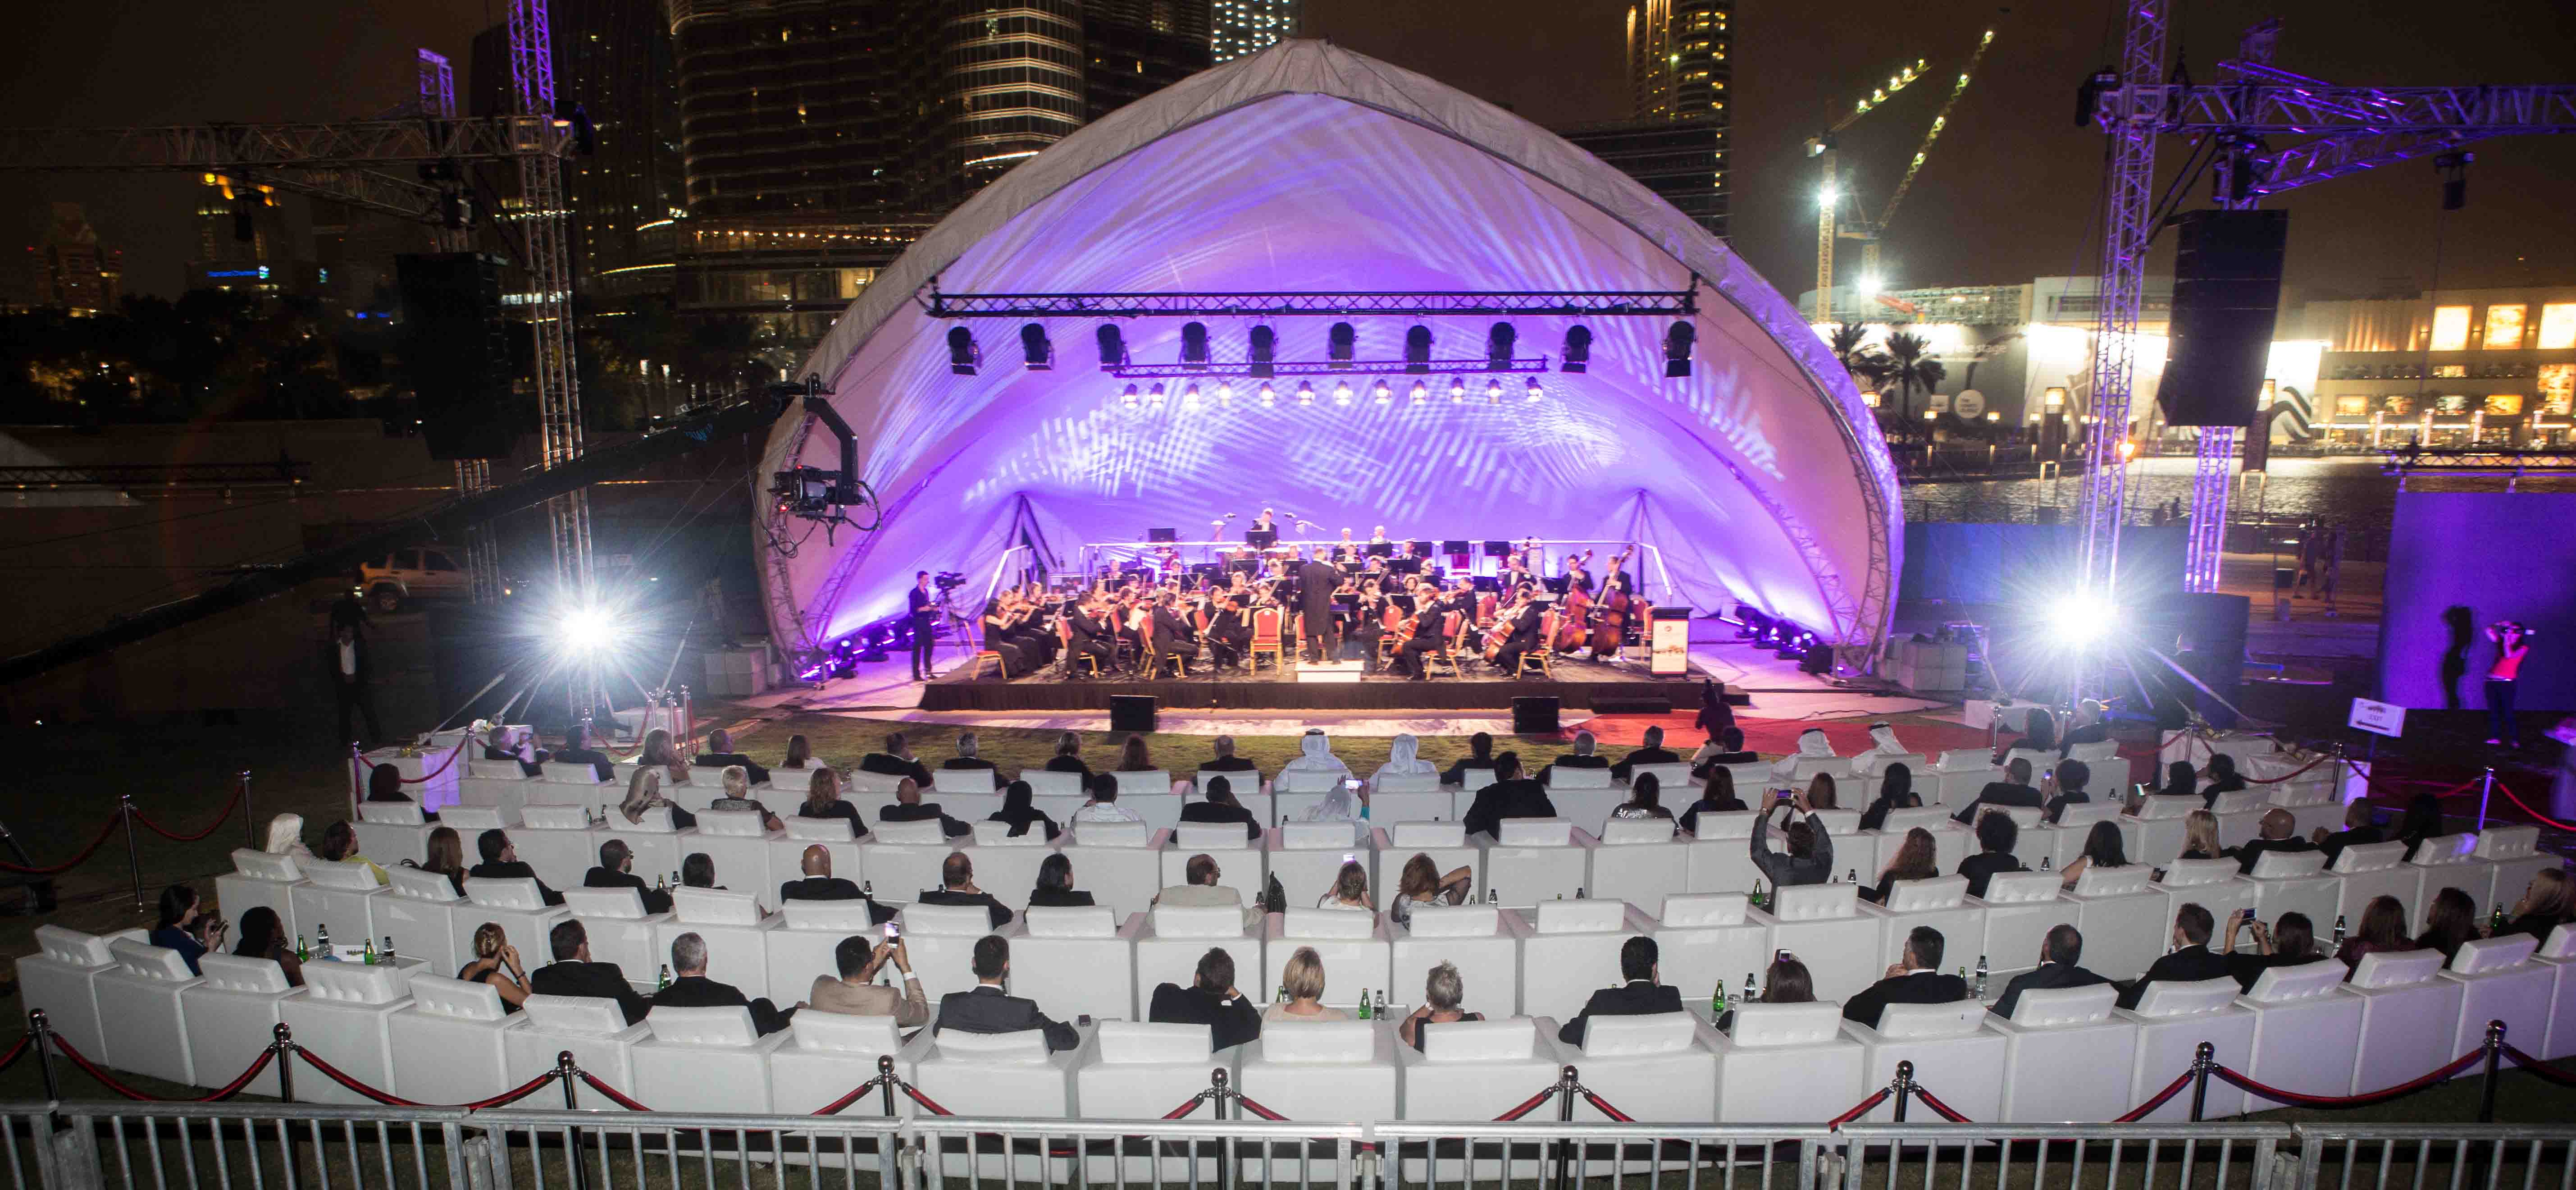 Deutsche Philharmonie Merck delighted audience to raise funds for multiple sclerosis (MS) patients in the UAE